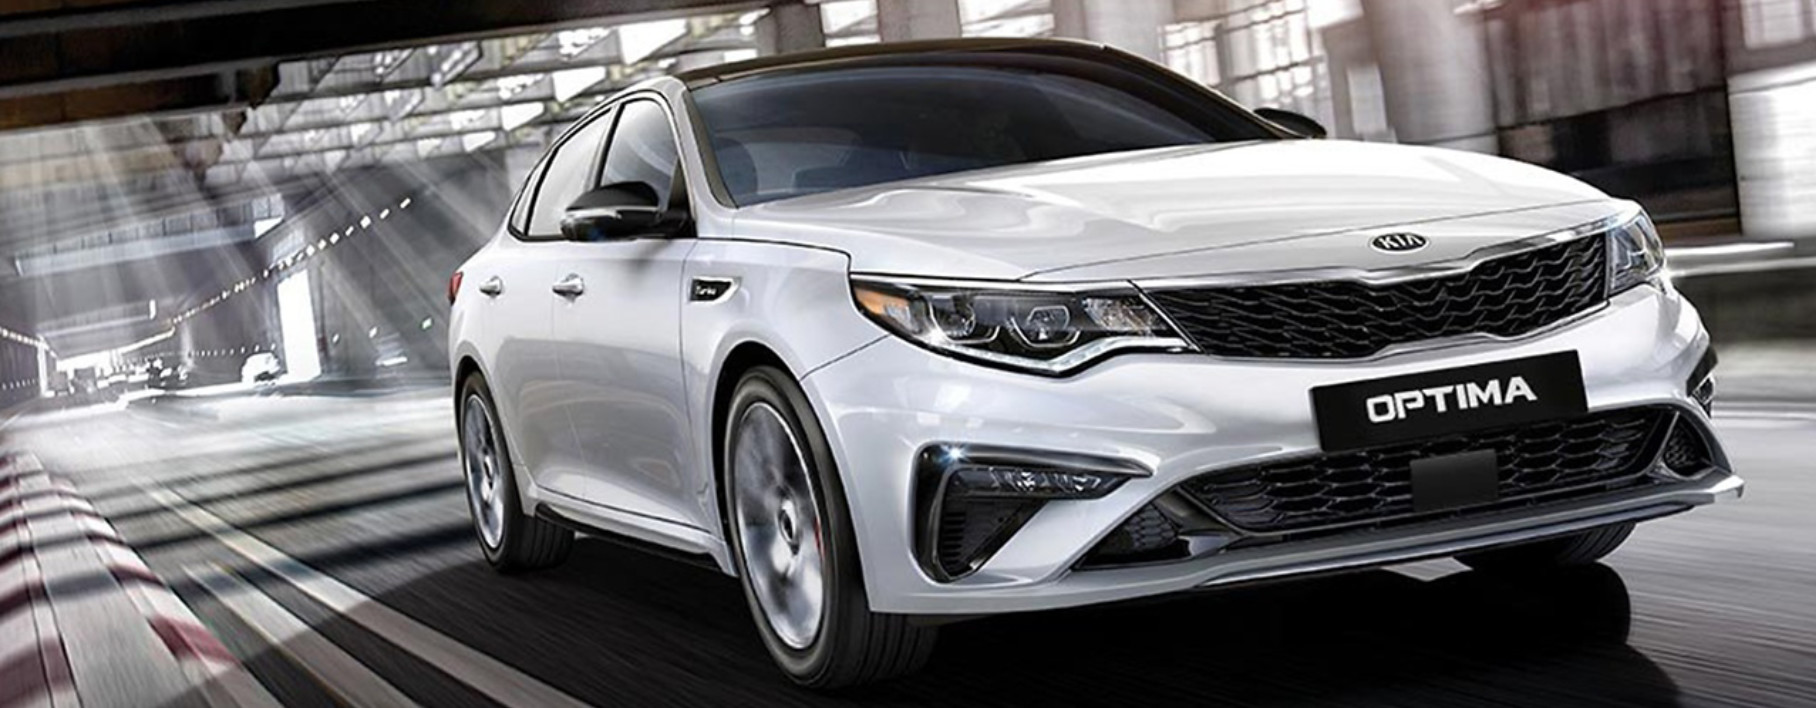 2020 Kia Optima Lease In Waco Tx